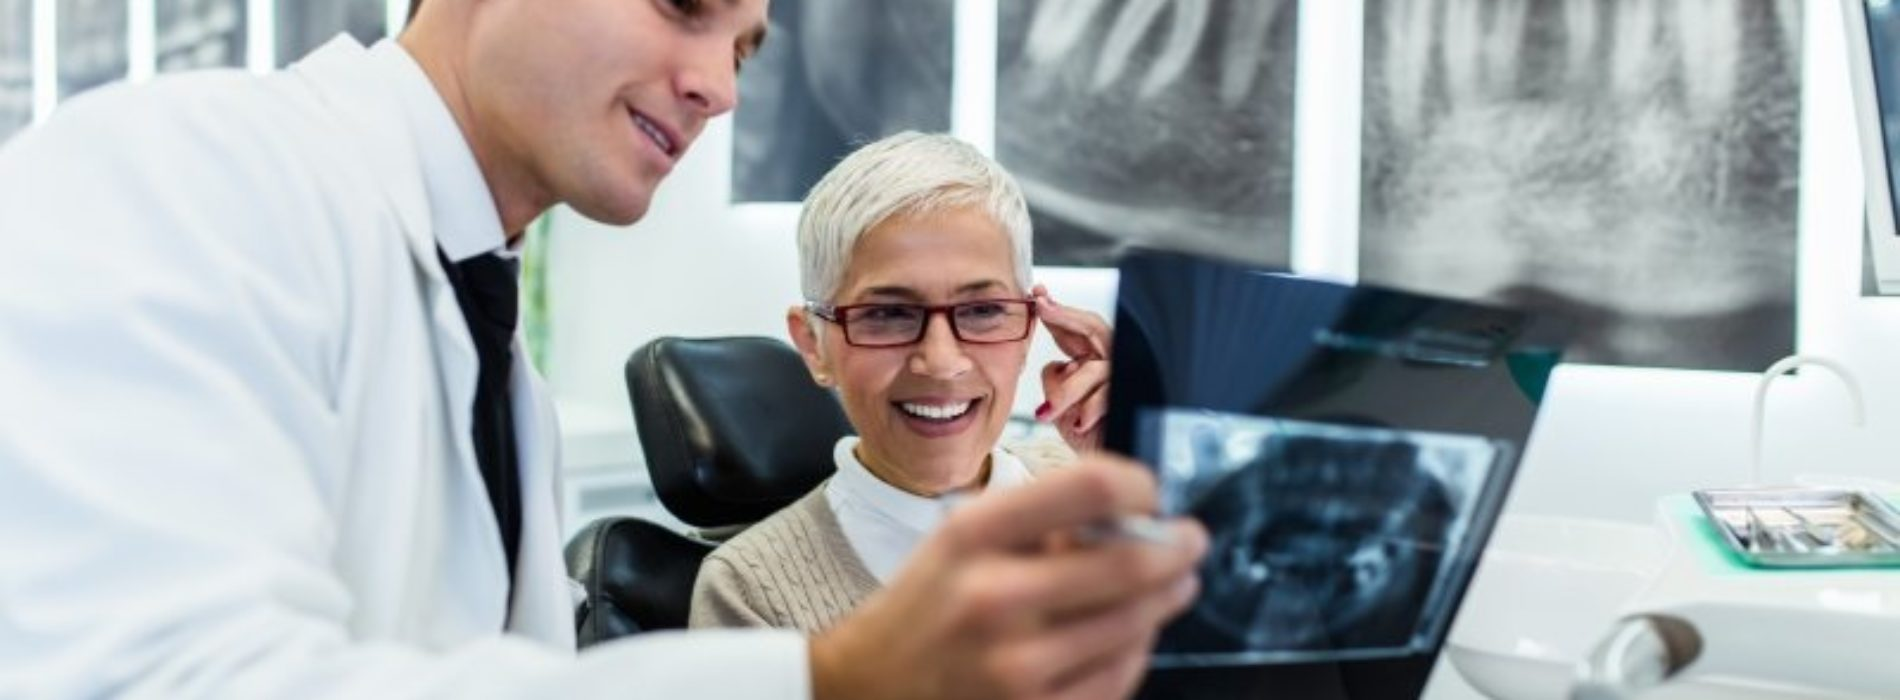 Discover the many benefits of working with an Arlington dentist